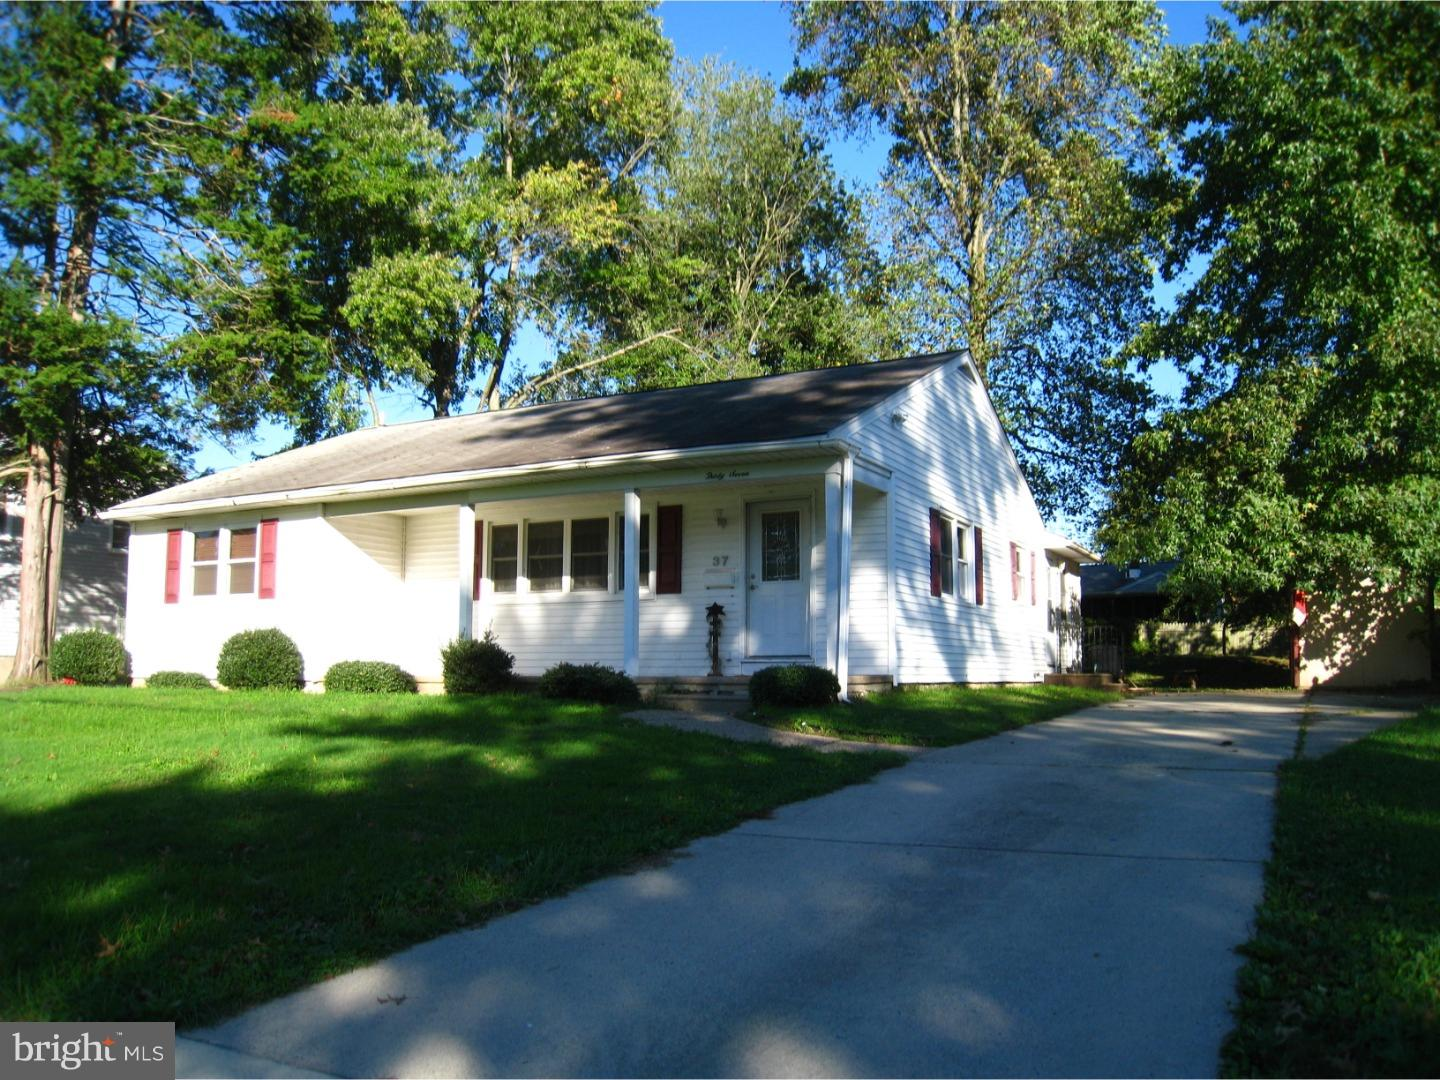 Single Family Home for Sale at 37 WINDING WAY Road Stratford, New Jersey 08084 United States